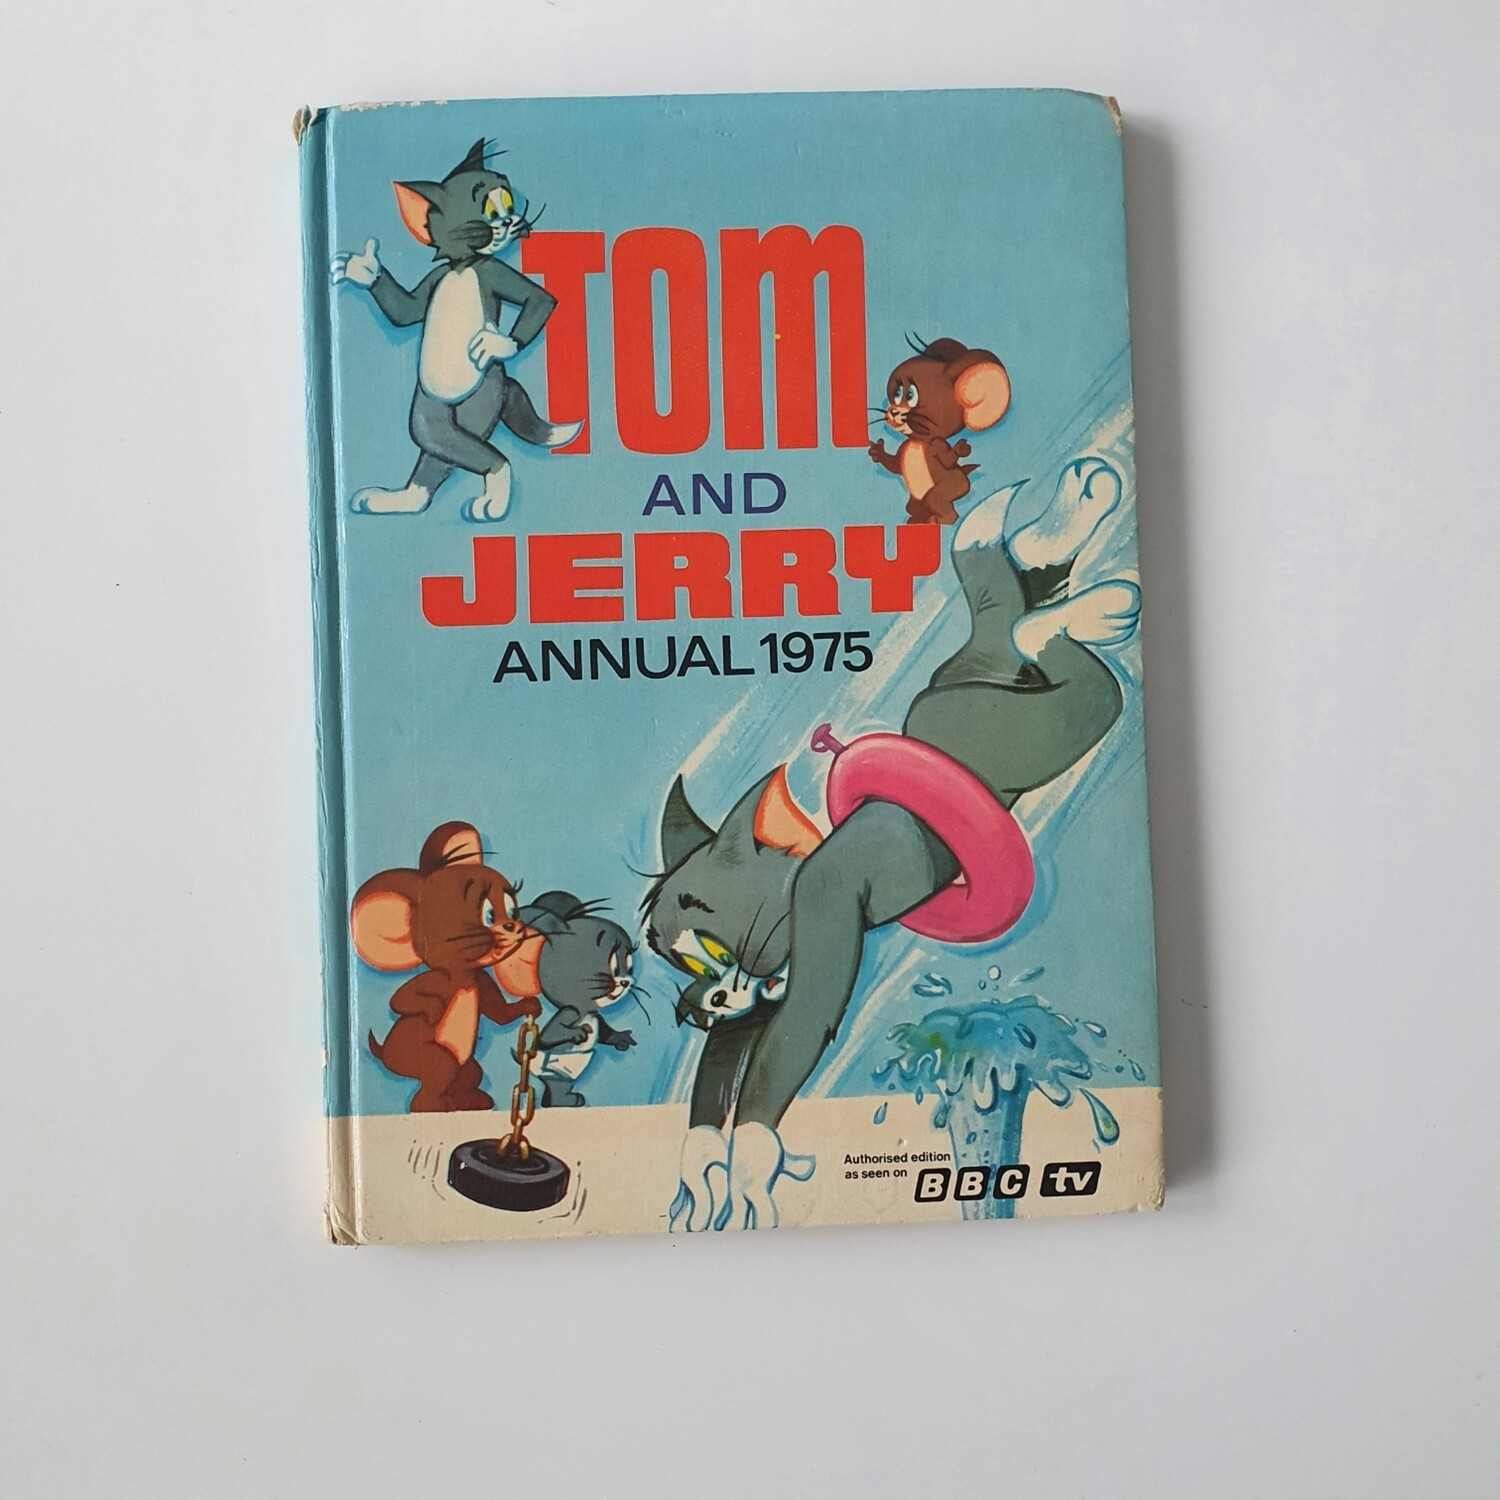 Tom and Jerry Annual 1975